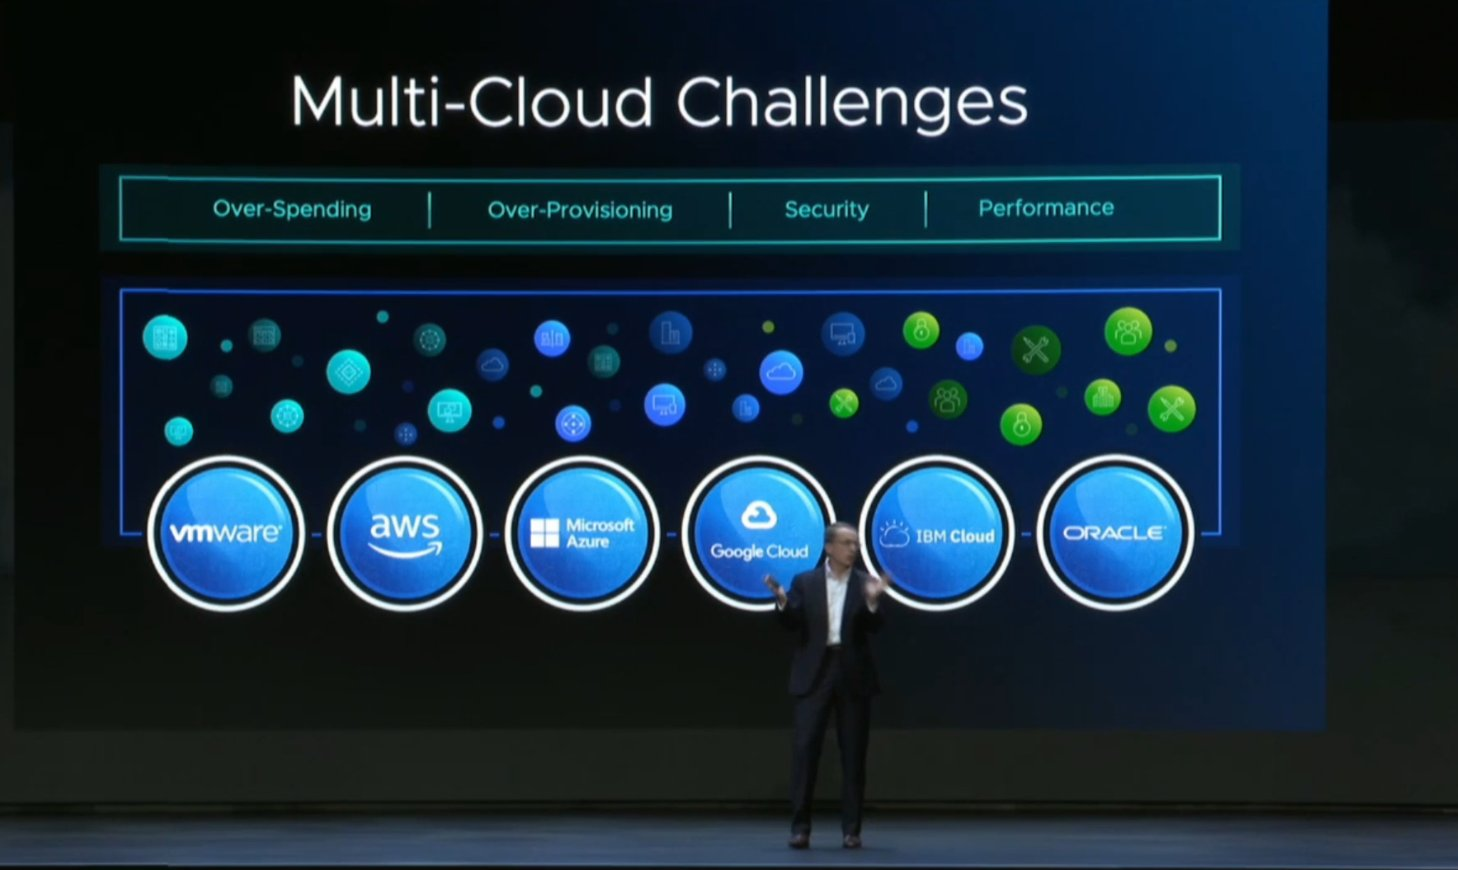 Coopetition and Making Cloud Better - Pat Gelsinger on VMware Partners